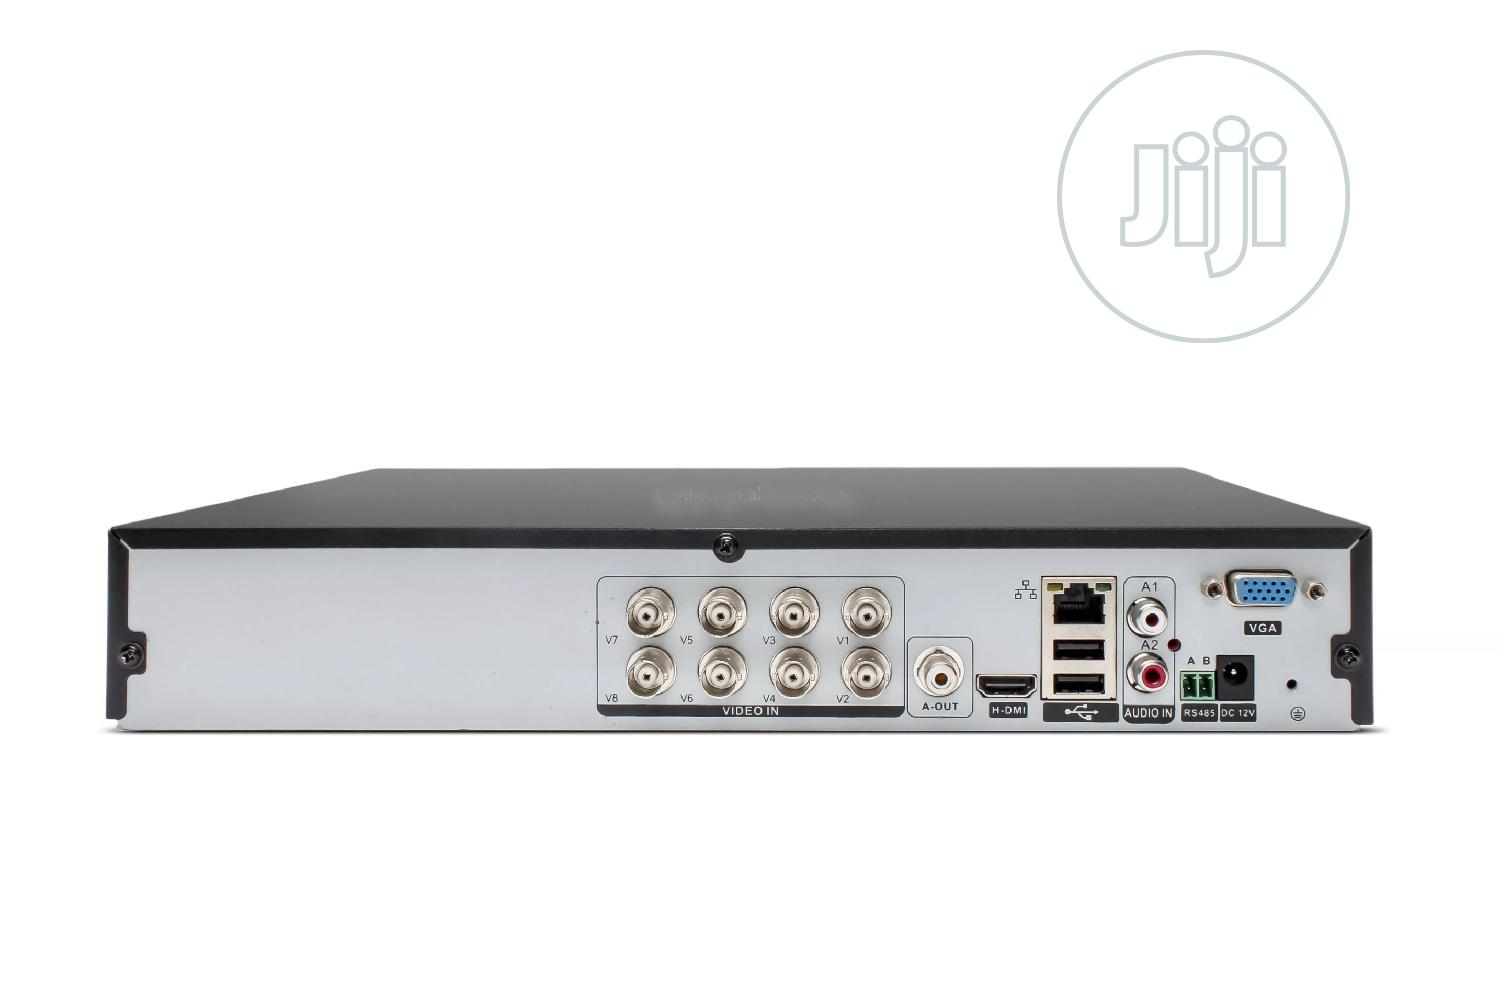 Mapesen 8CH DVR / NVR 5-in-1 2MP CCTV Digital Video Recorder   Security & Surveillance for sale in Port-Harcourt, Rivers State, Nigeria